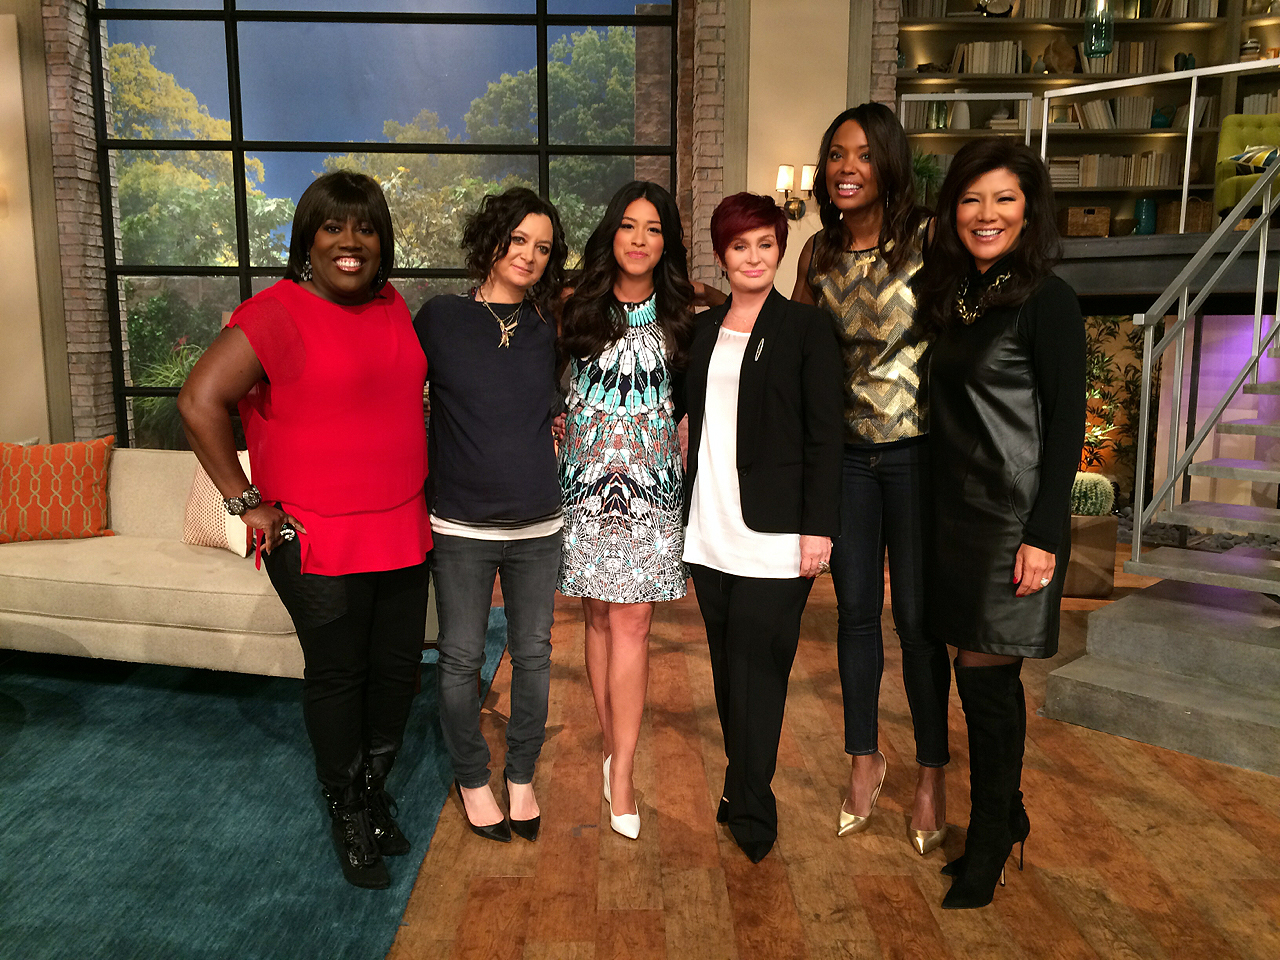 7. The ladies caught up with Gina Rodriguez.